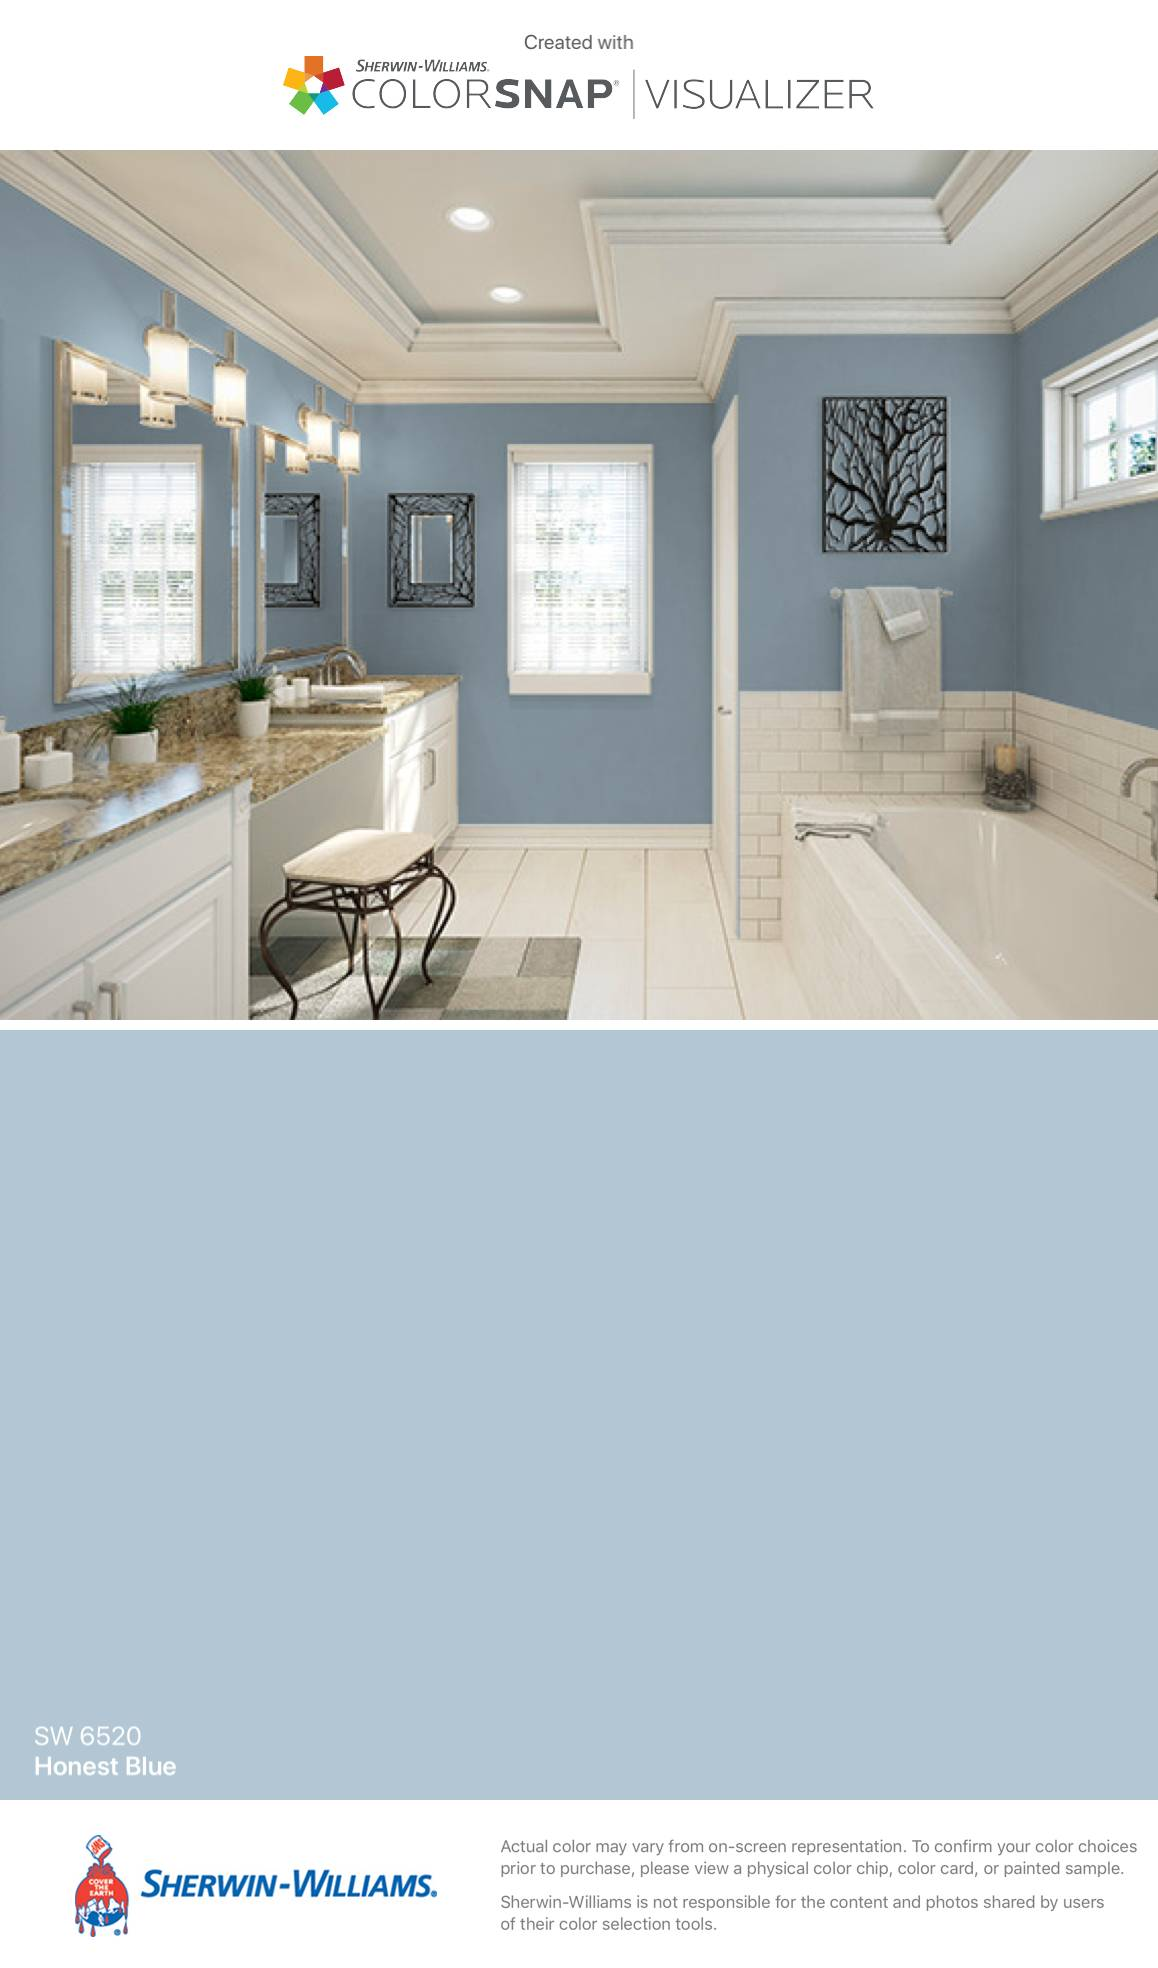 Sherwin Williams Sandbar Interior Fresh I Found This Color with Colorsnap Visualizer for iPhone by